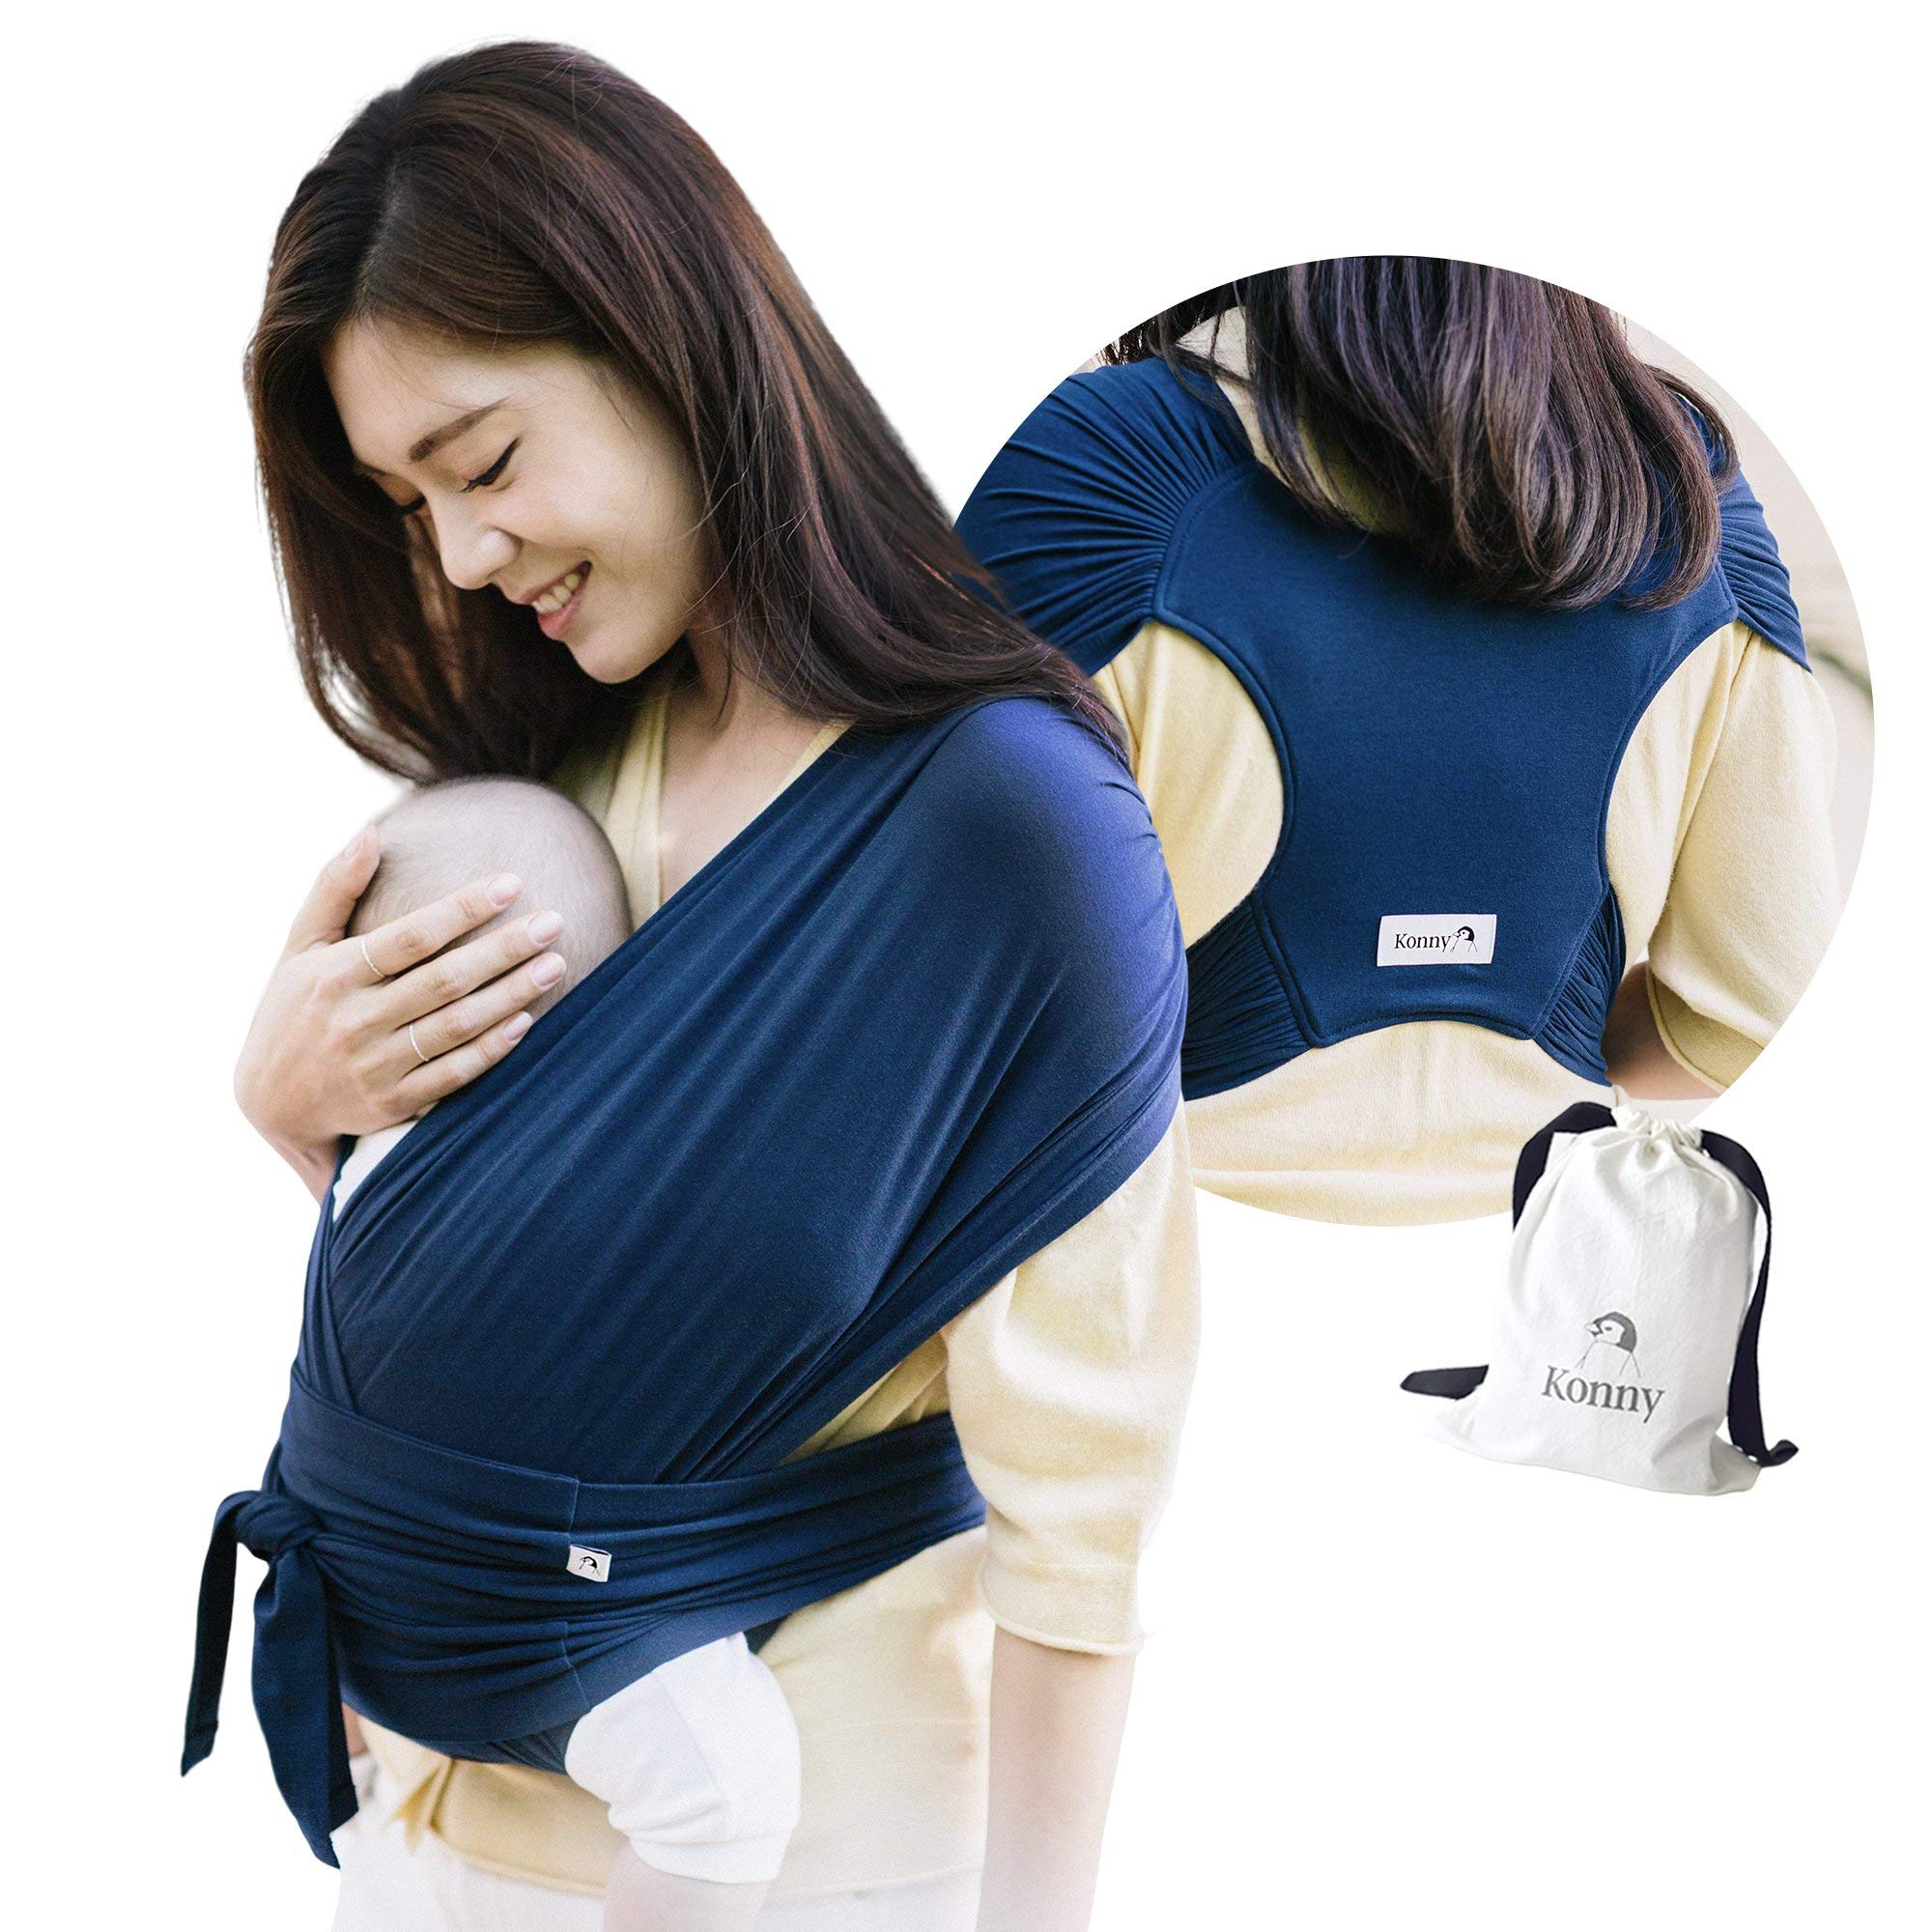 Konny Baby Carrier | Ultra-Lightweight, Hassle-Free Baby Wrap Sling | Newborns, Infants to 44 lbs Toddlers | Soft and Breathable Fabric | Sensible Sleep Solution (Navy, XL)